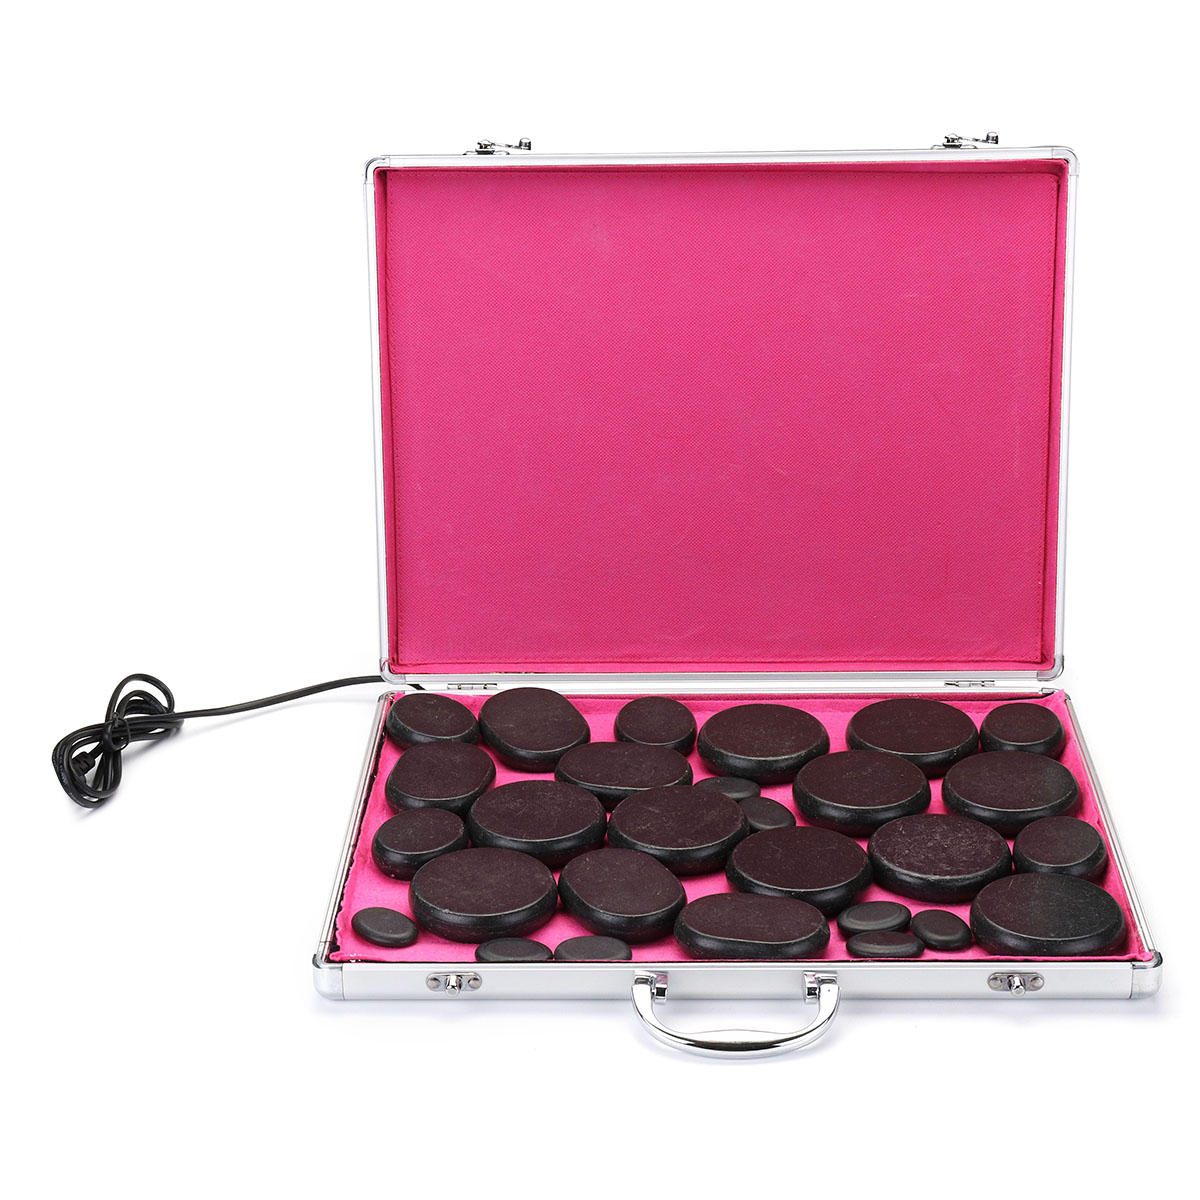 28 PCS Hot Basalt Stone For SPA Massager Therapy Manual With Heating Box Set Skin Relief